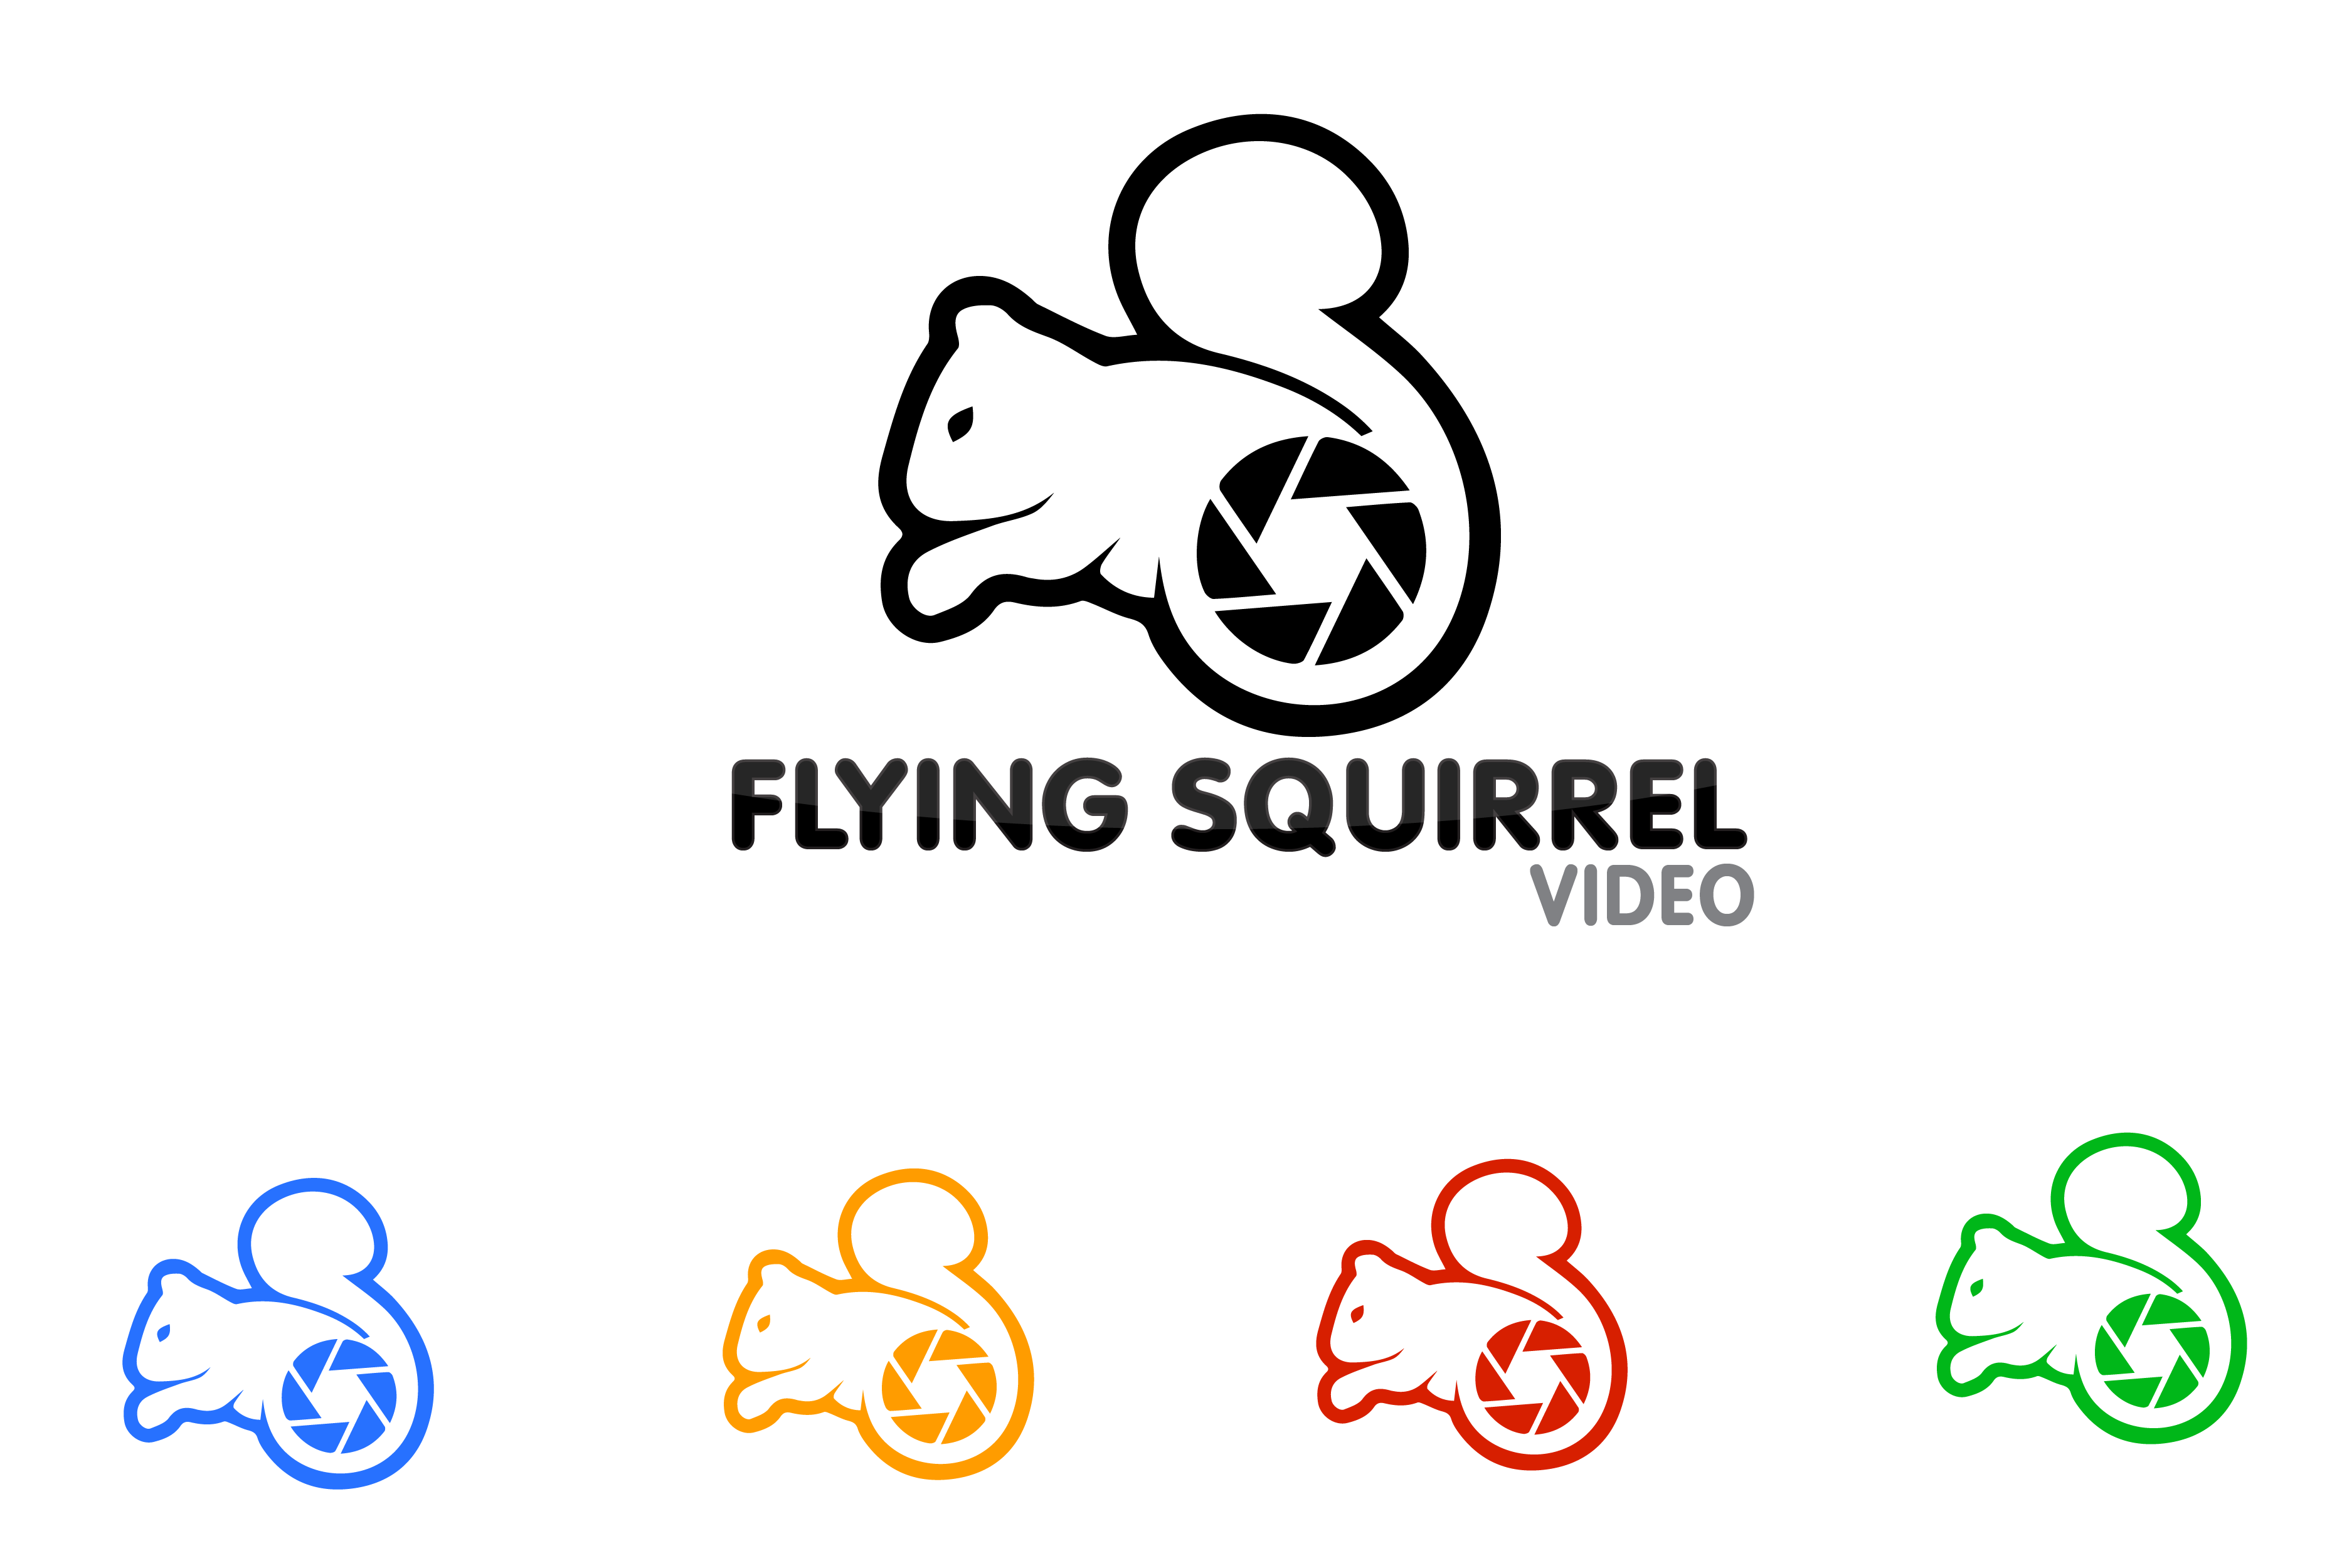 Logo Design by Private User - Entry No. 12 in the Logo Design Contest Artistic Logo Design for Flying squirrel video.